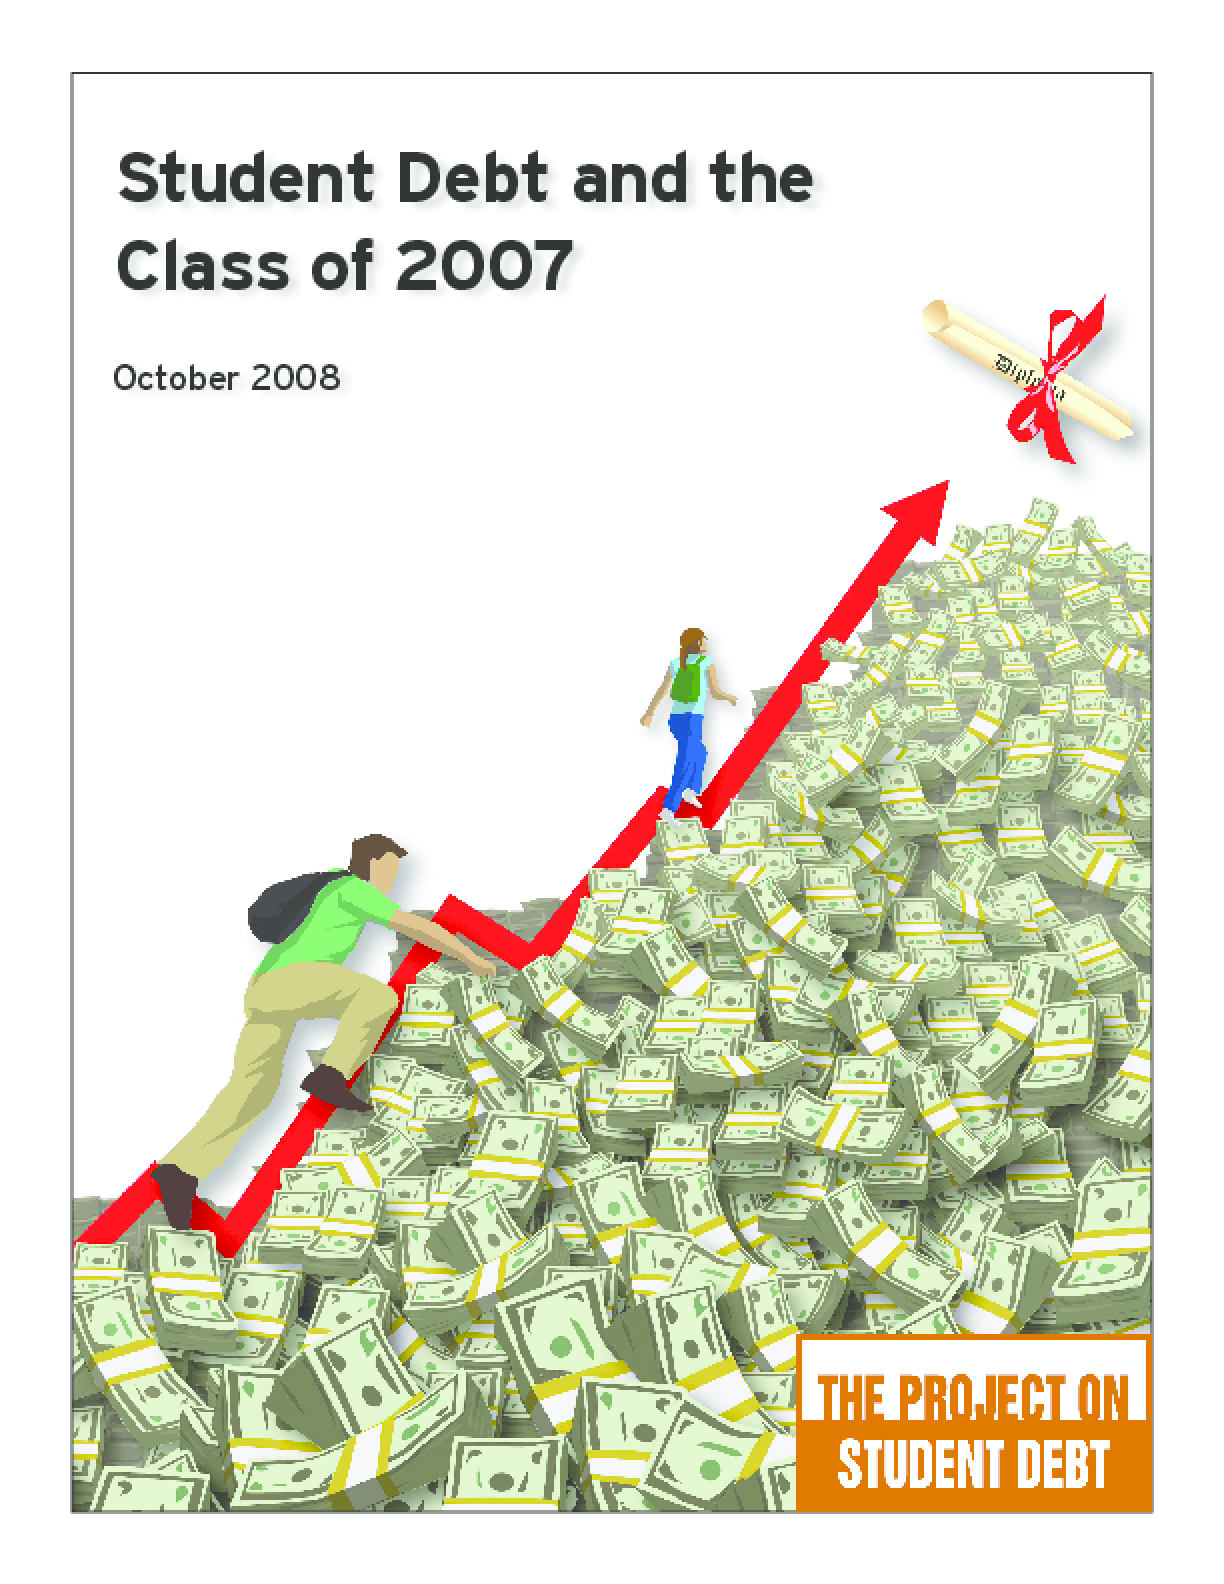 Student Debt and the Class of 2007